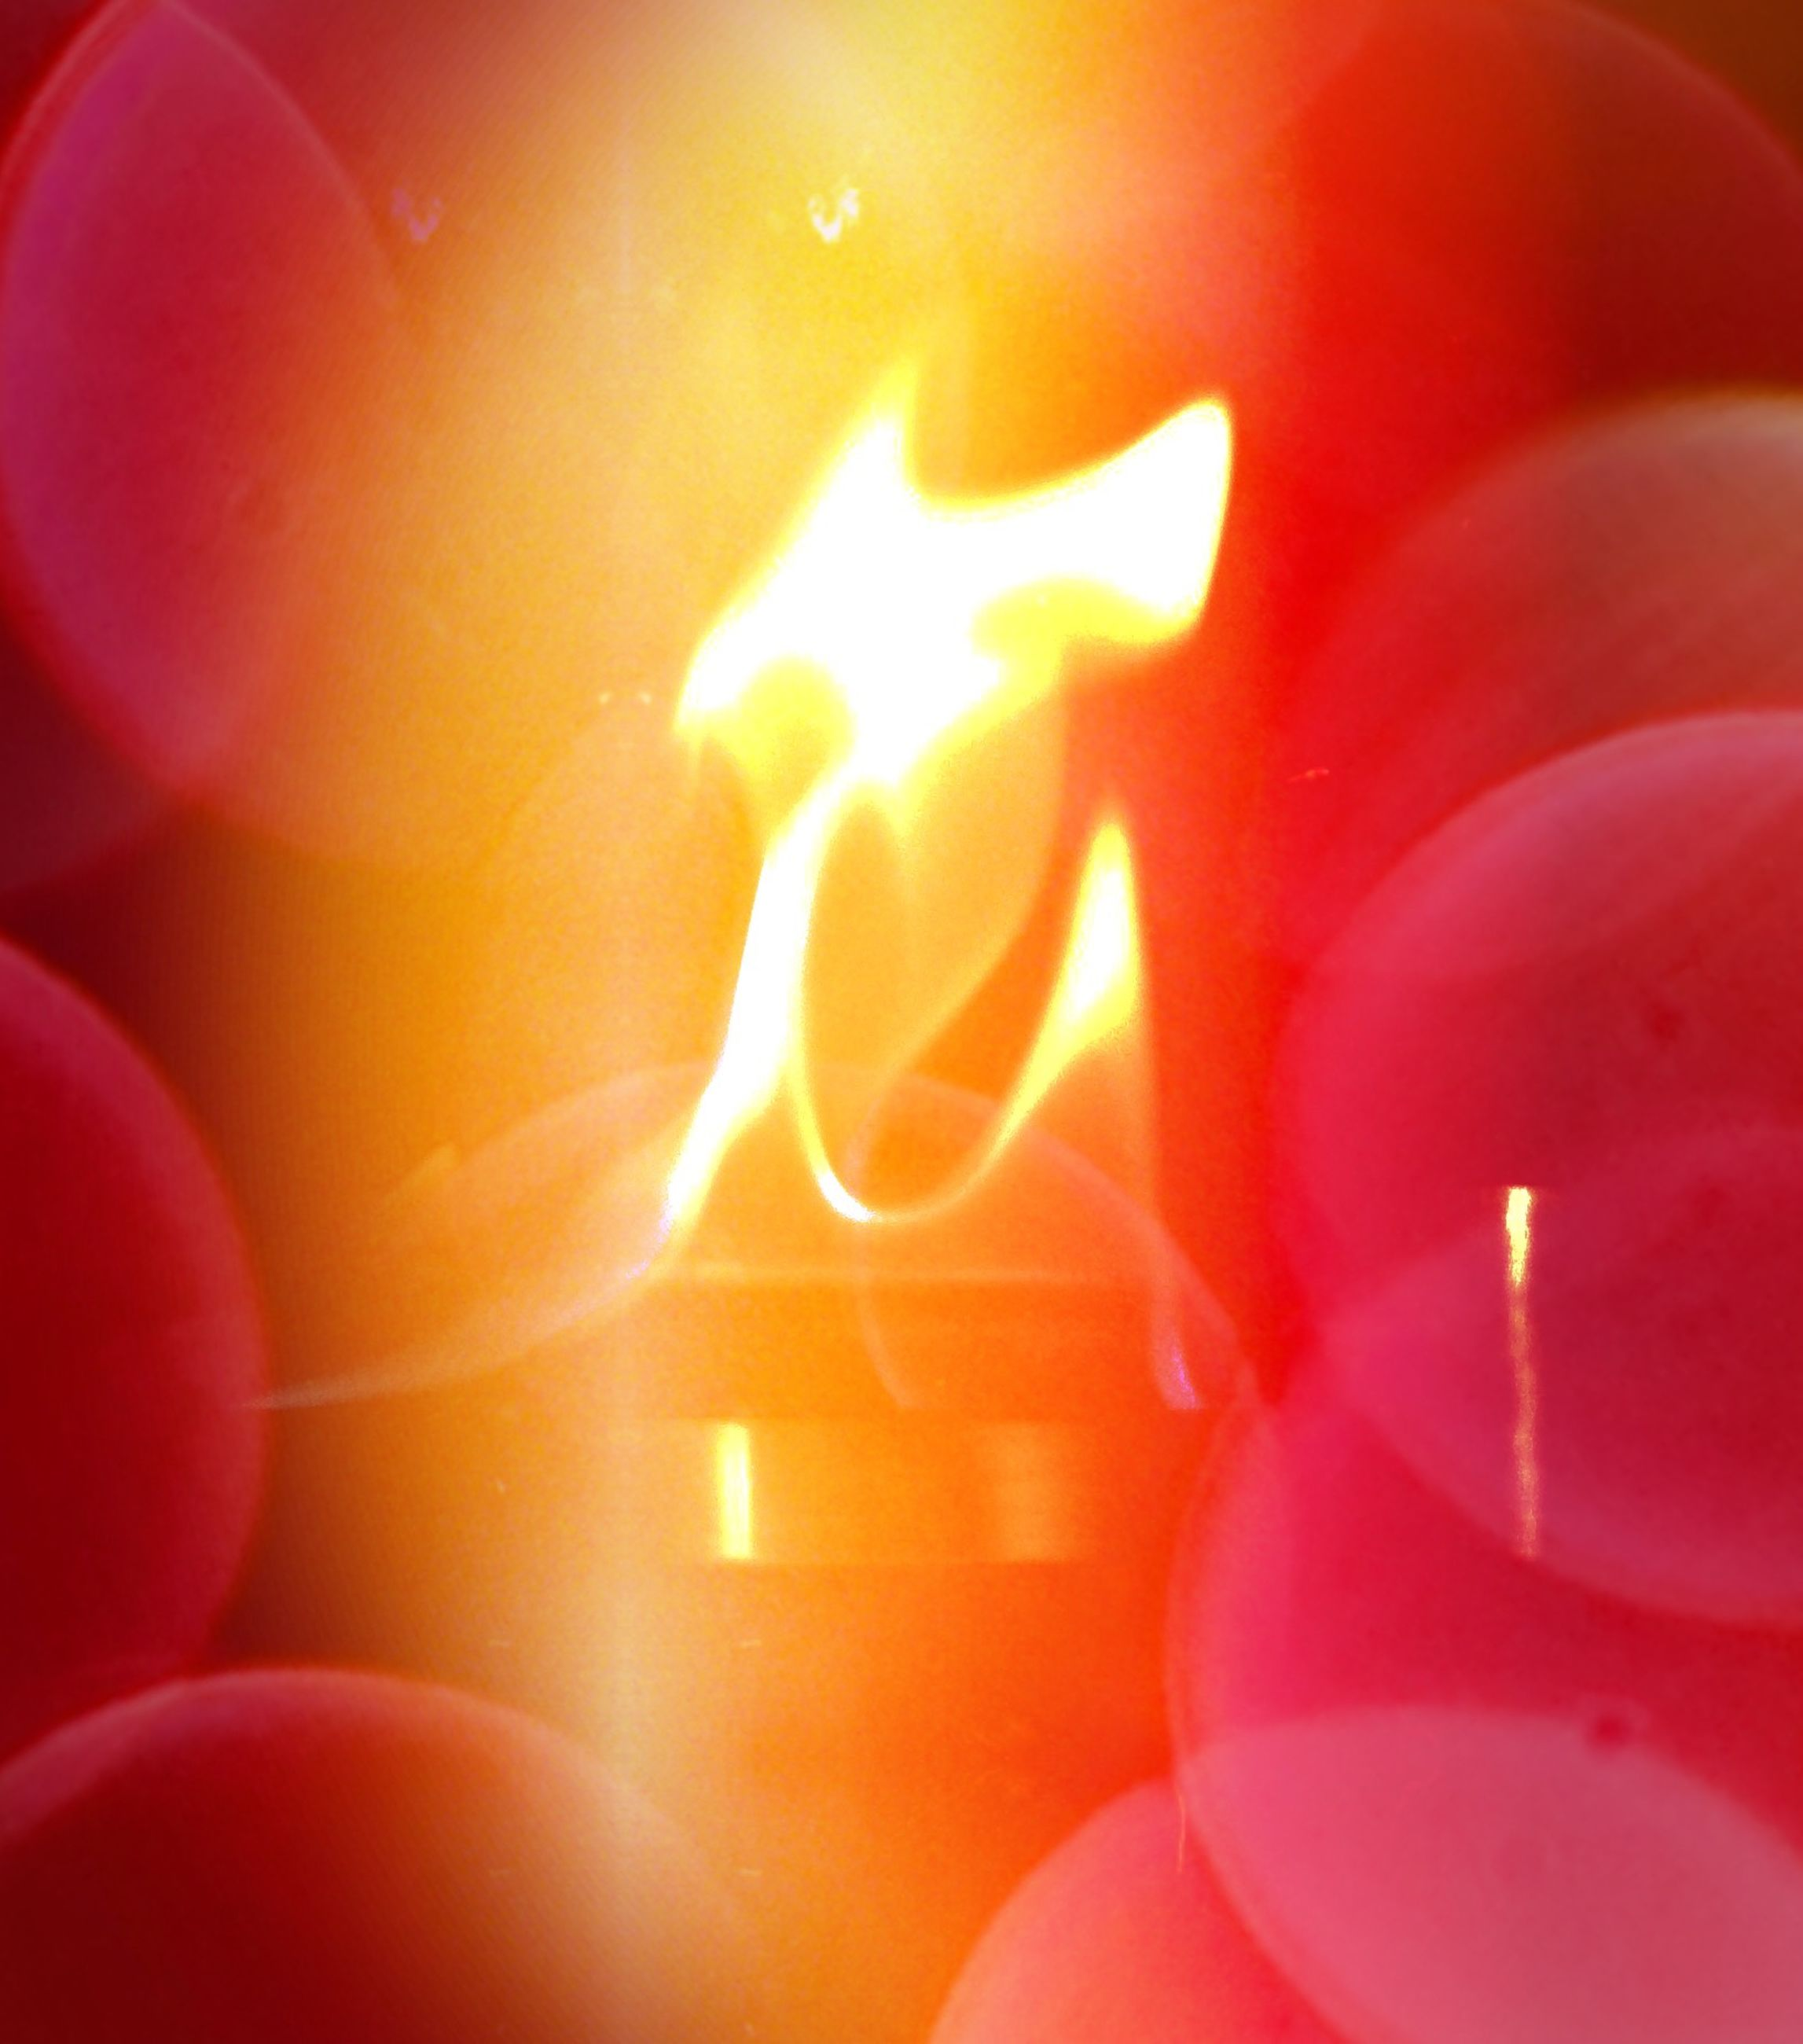 red, indoors, full frame, glowing, backgrounds, close-up, orange color, flame, burning, no people, candle, heat - temperature, fire - natural phenomenon, illuminated, high angle view, pattern, celebration, vibrant color, still life, pink color